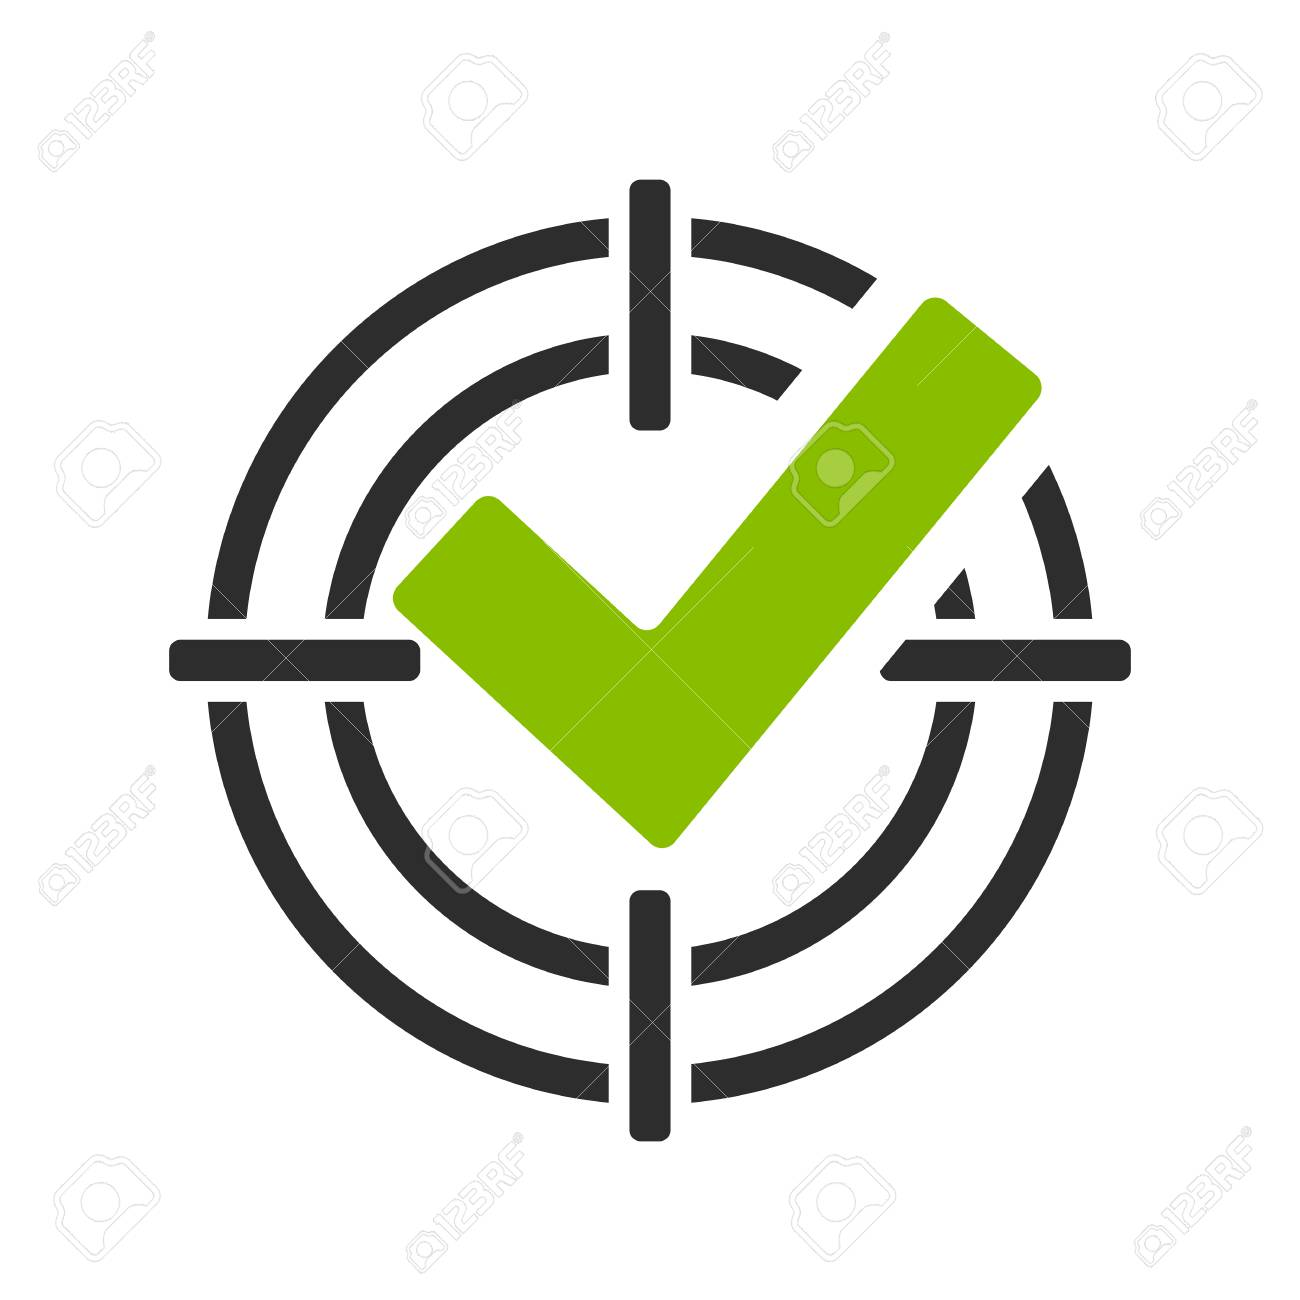 Green tick in shooting sight vector icon - 92284197